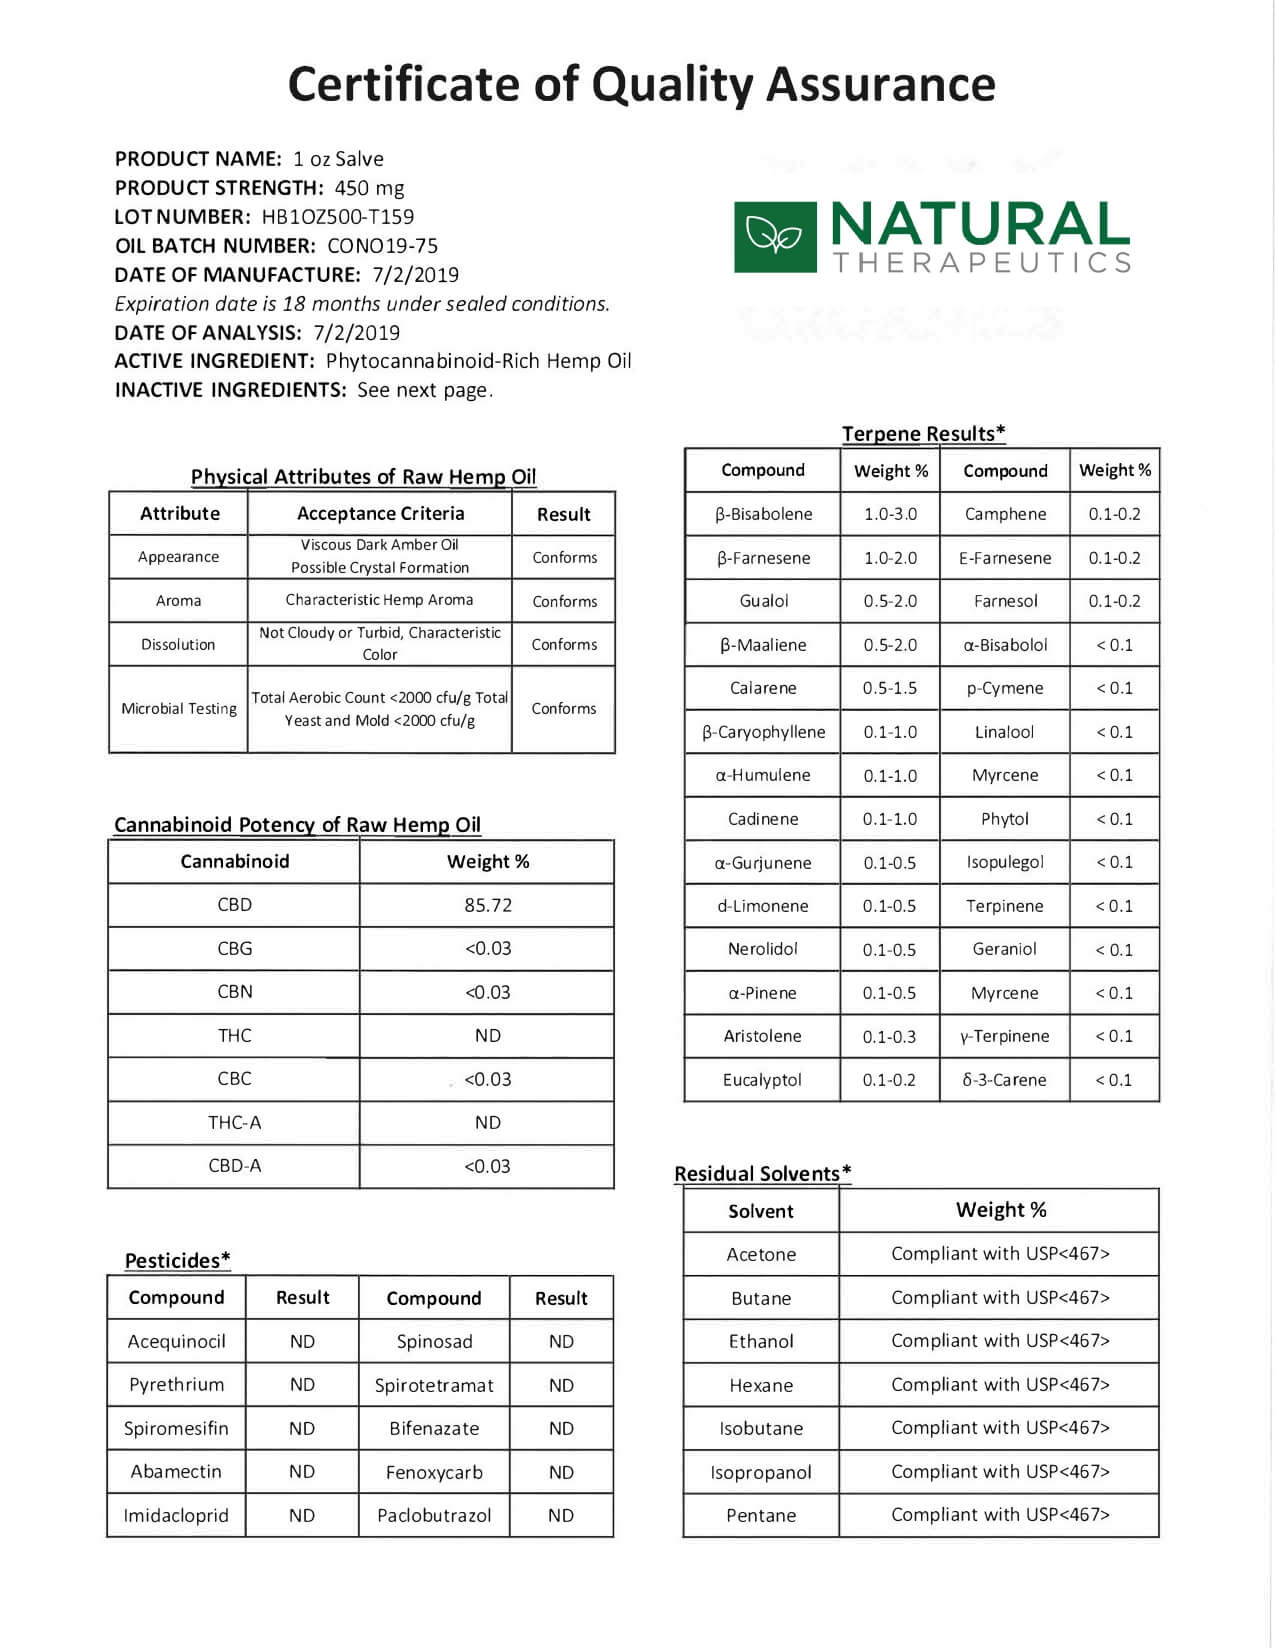 Natural Therapeutics CBD Topical Soothe Salve 500mg Lab Report